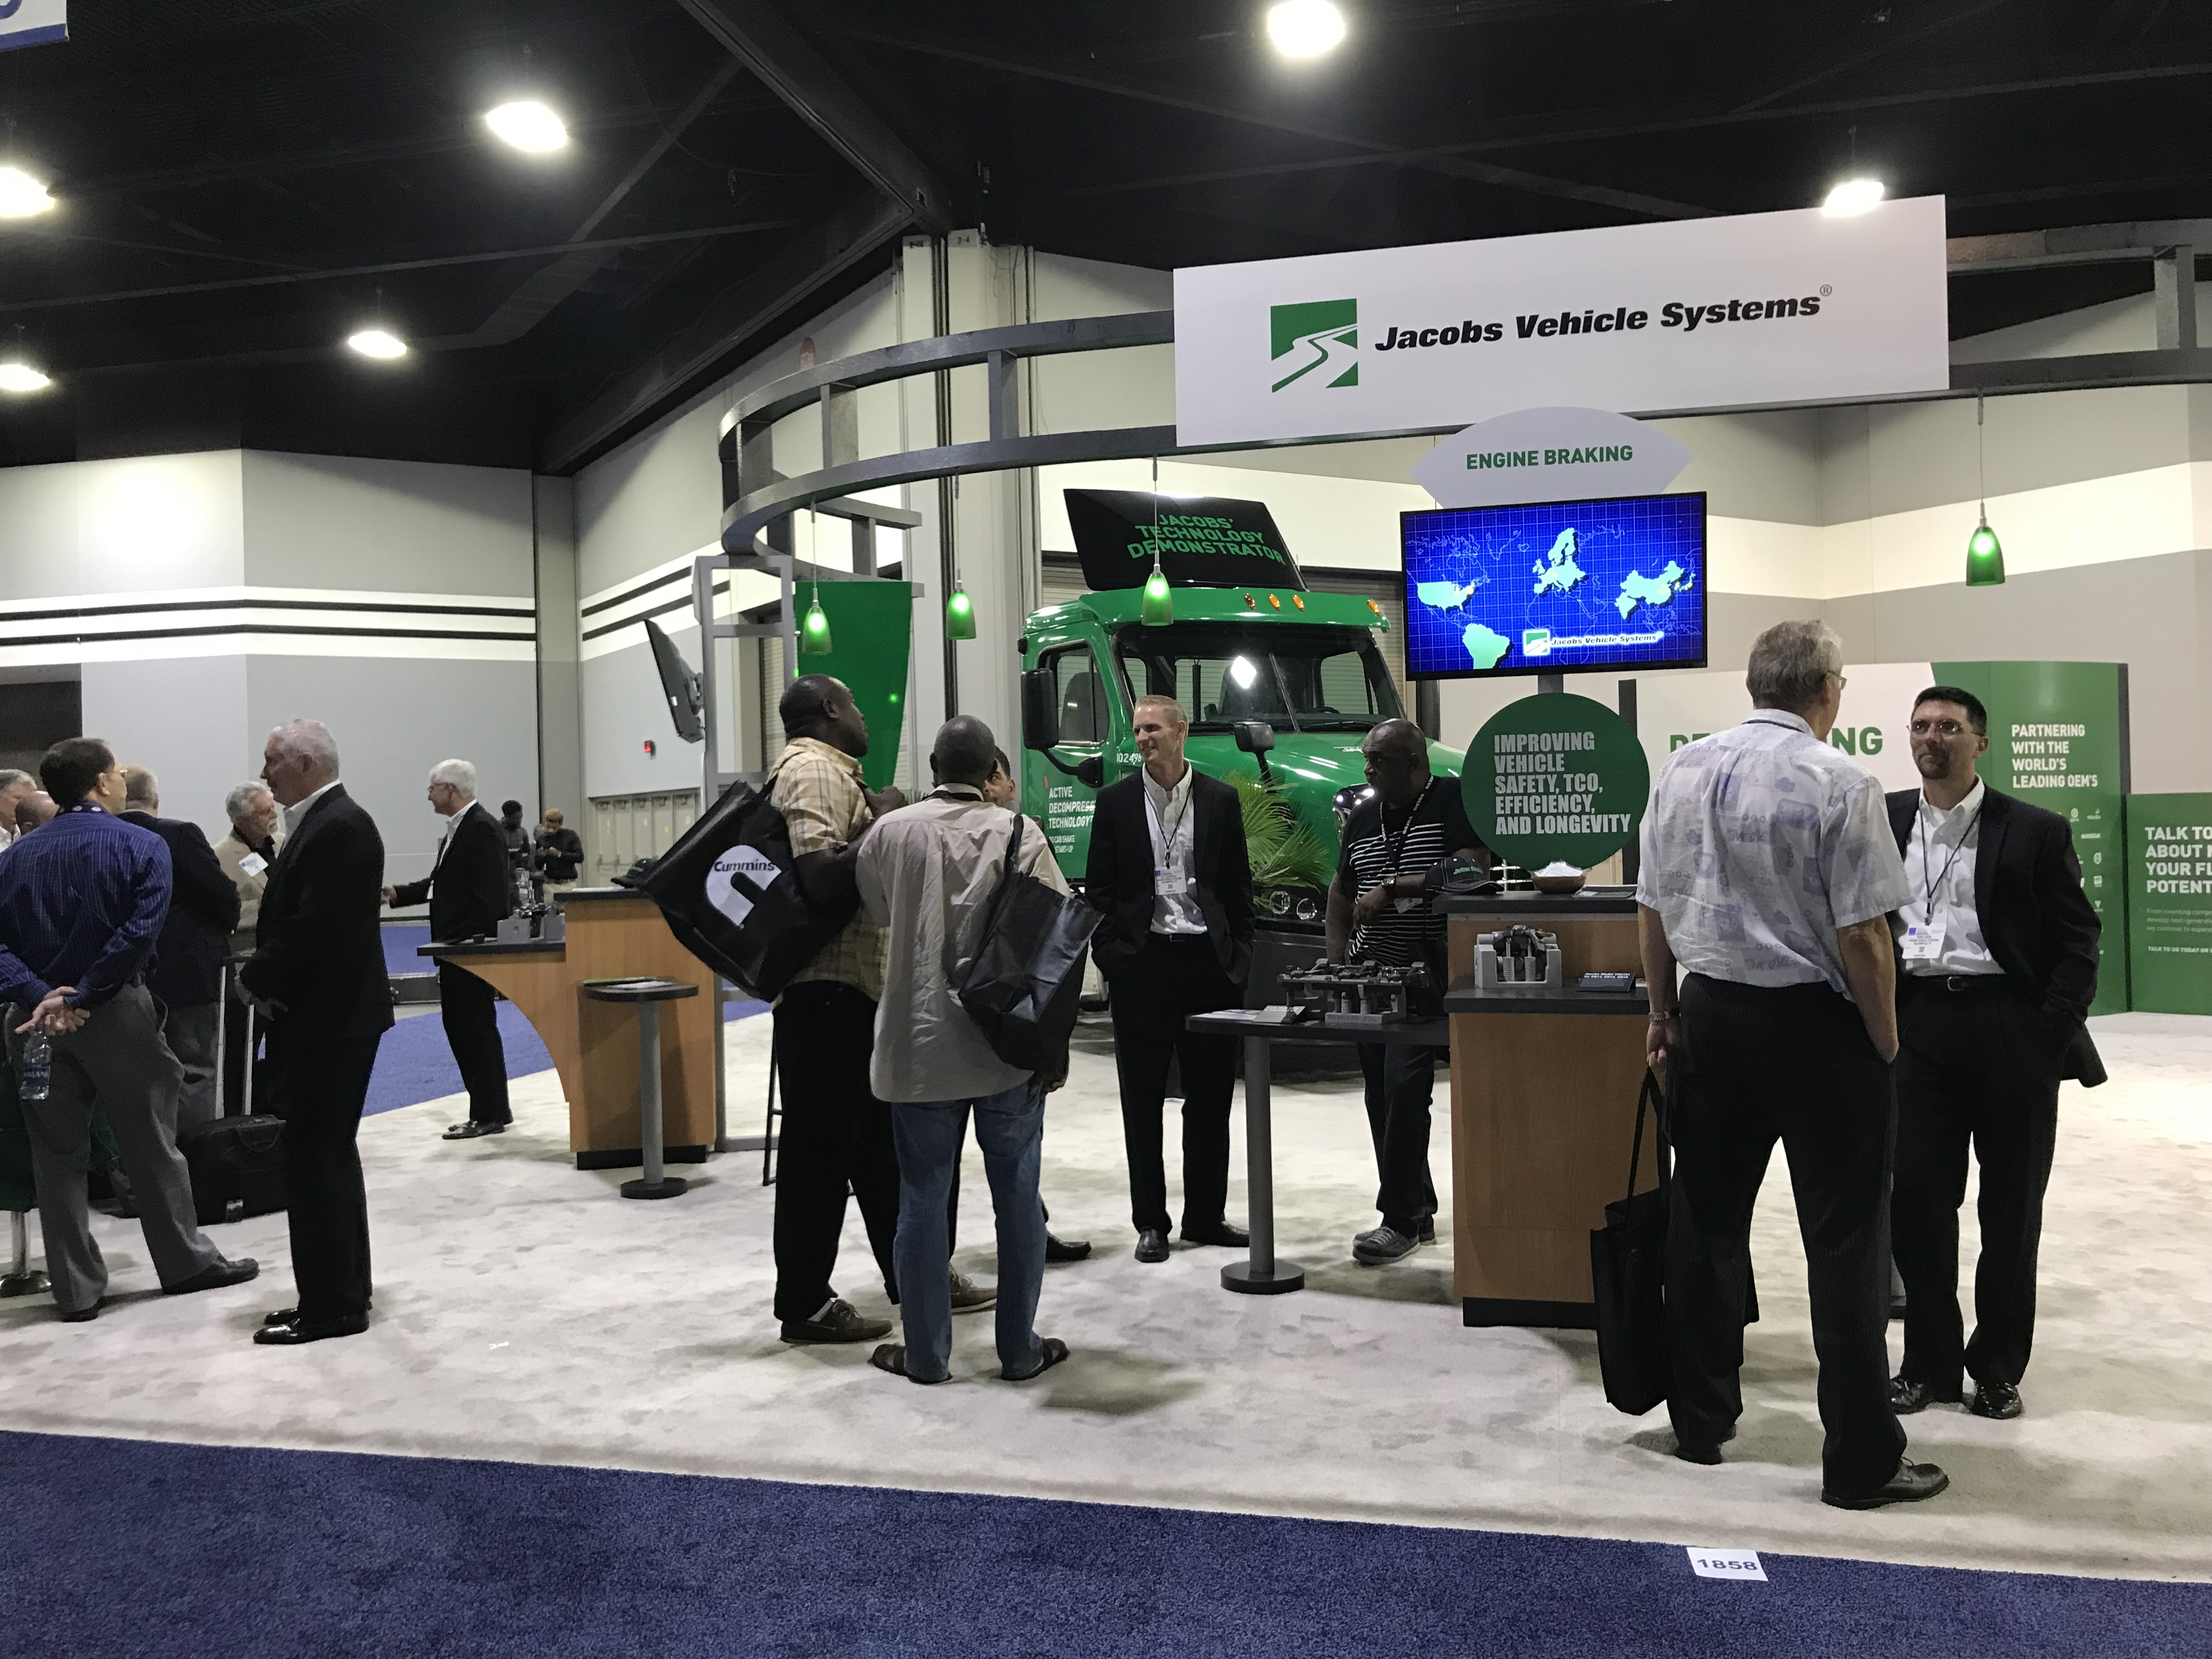 Image of Jacobs Vehicle Systems' 2017 NACV Booth.  Groups of people stand in the booth asking questions.  The booth is white and green.  There is a green semi truck parked in the booth.